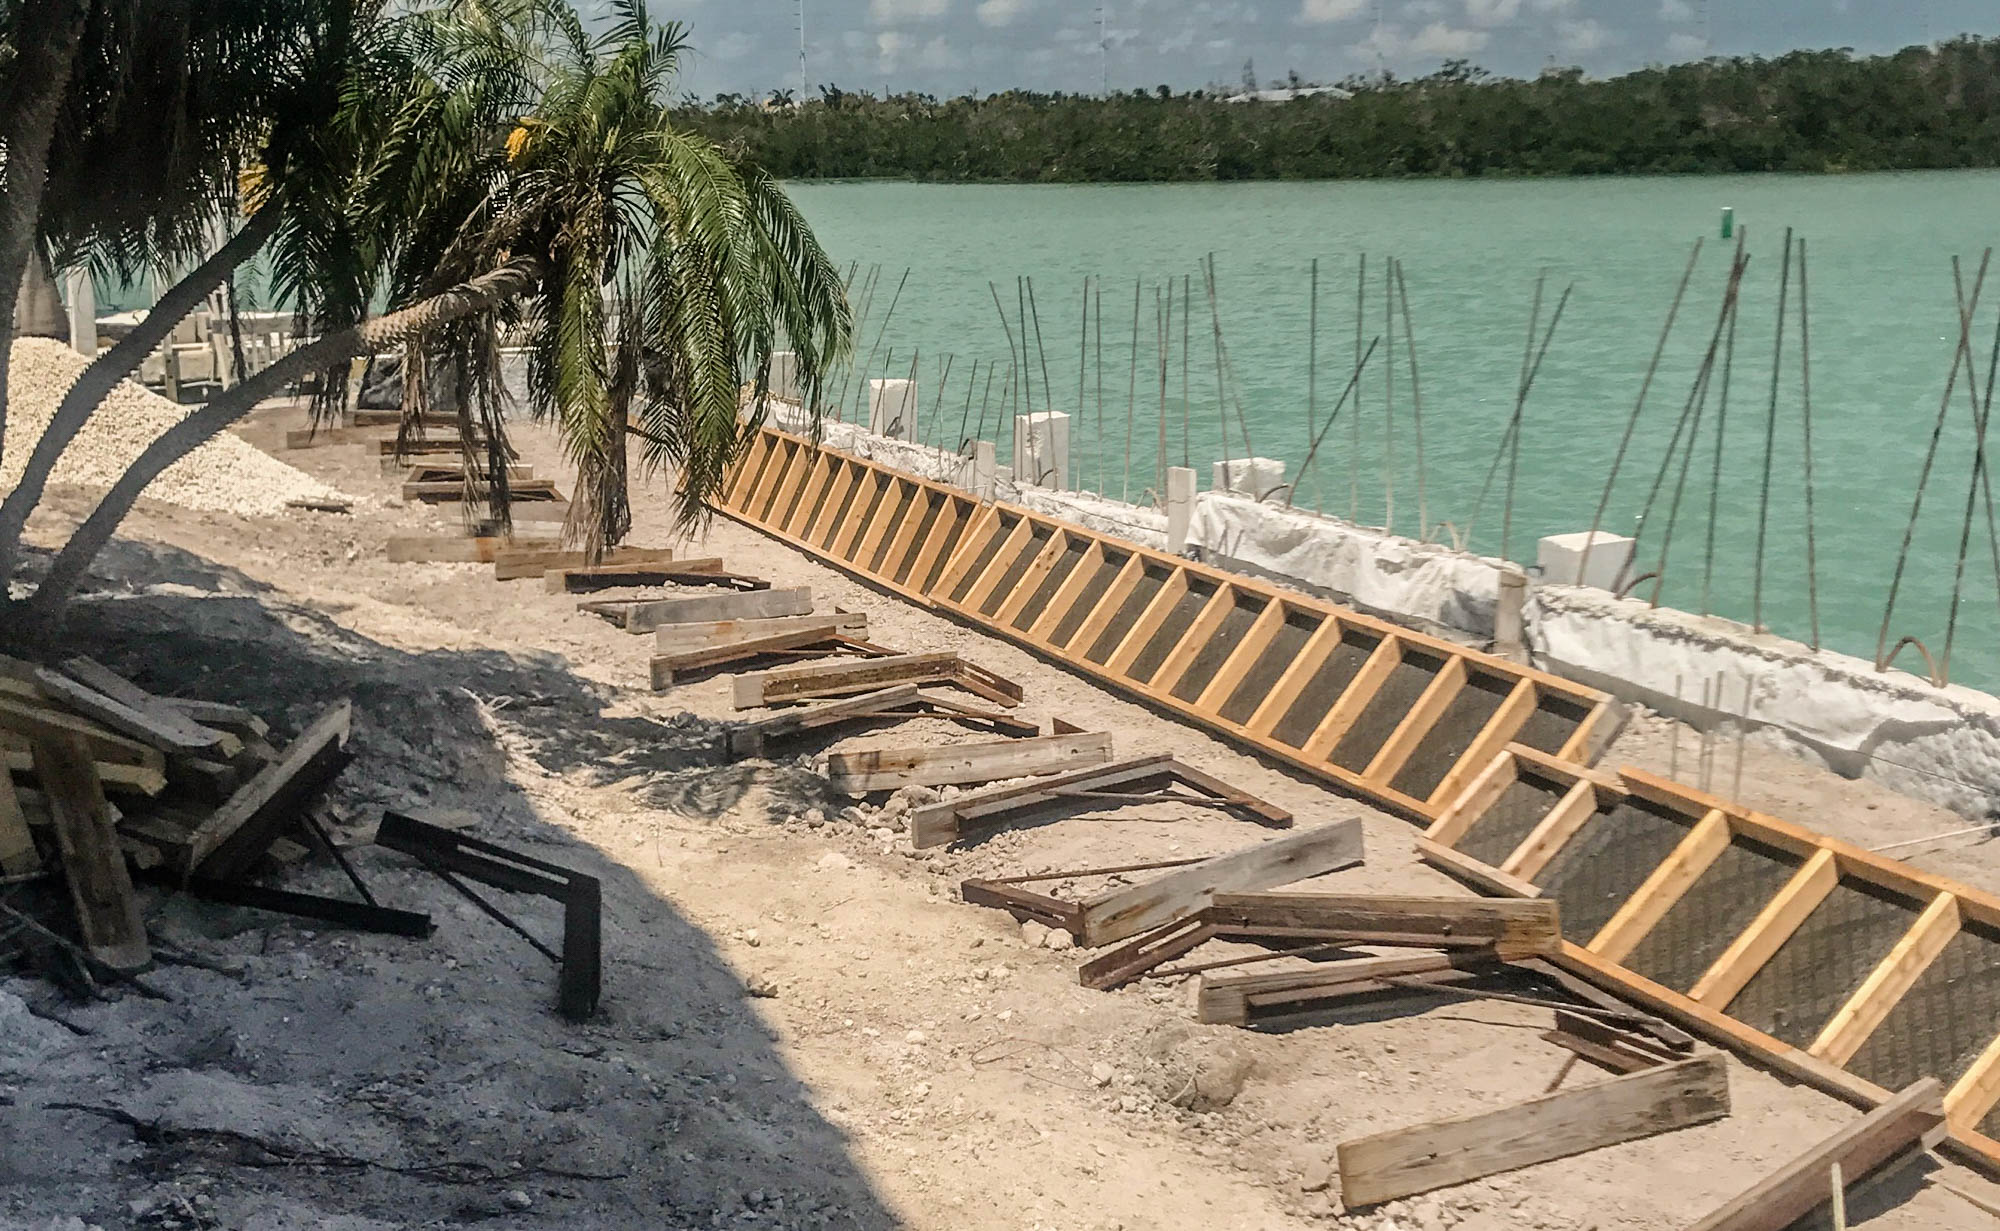 Seawalls, Marathon, Florida Keys, Boatlifts, Docks, Builders